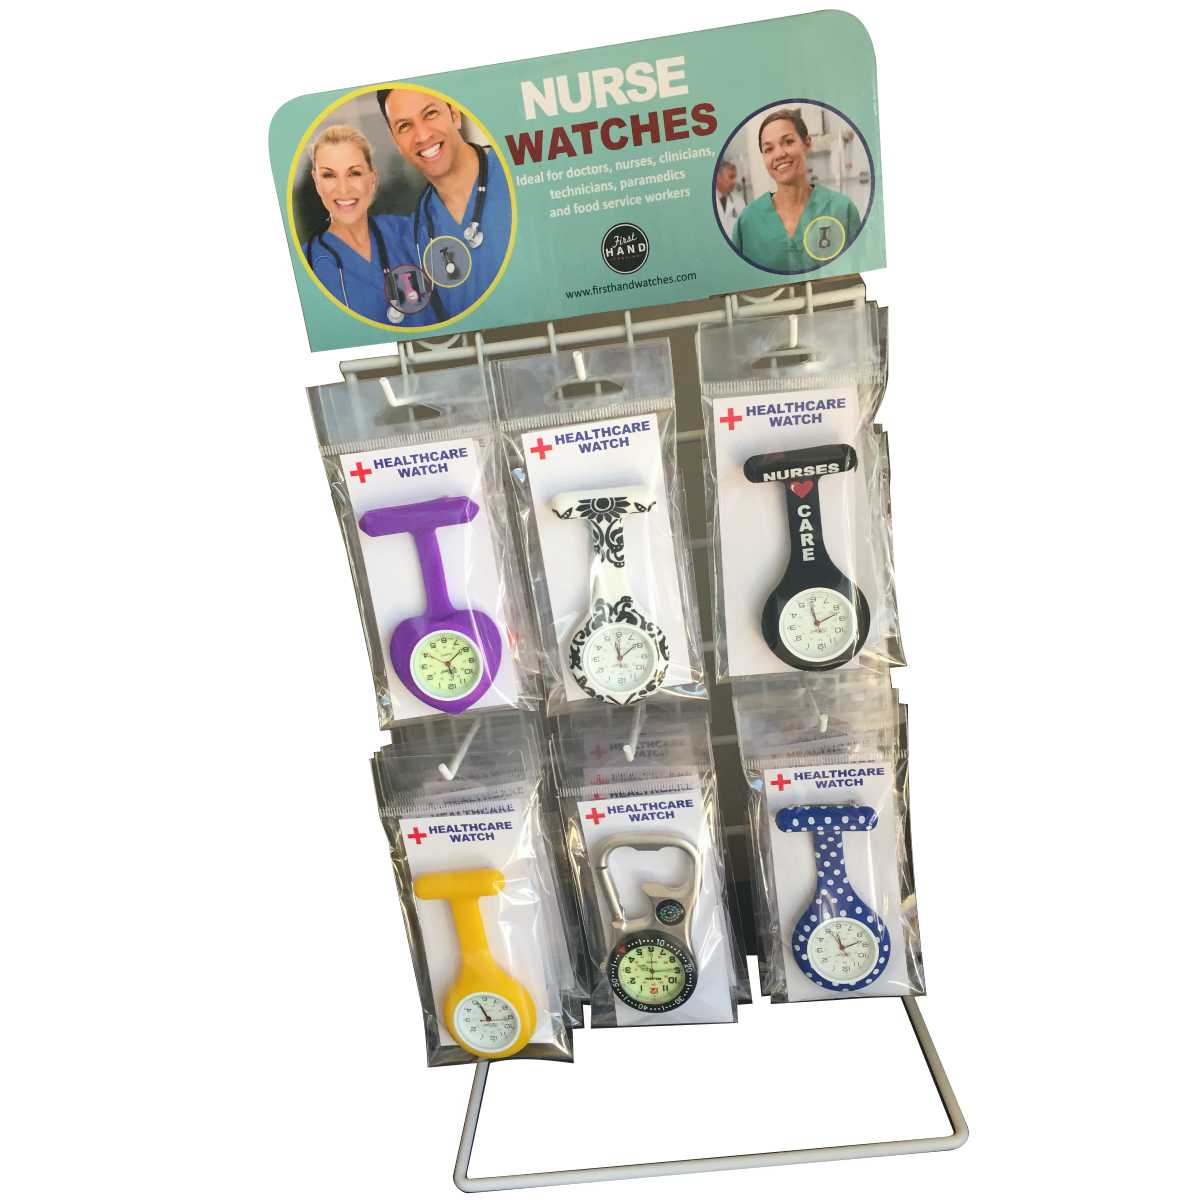 Health Care Watch Pre-Pack- Assortment